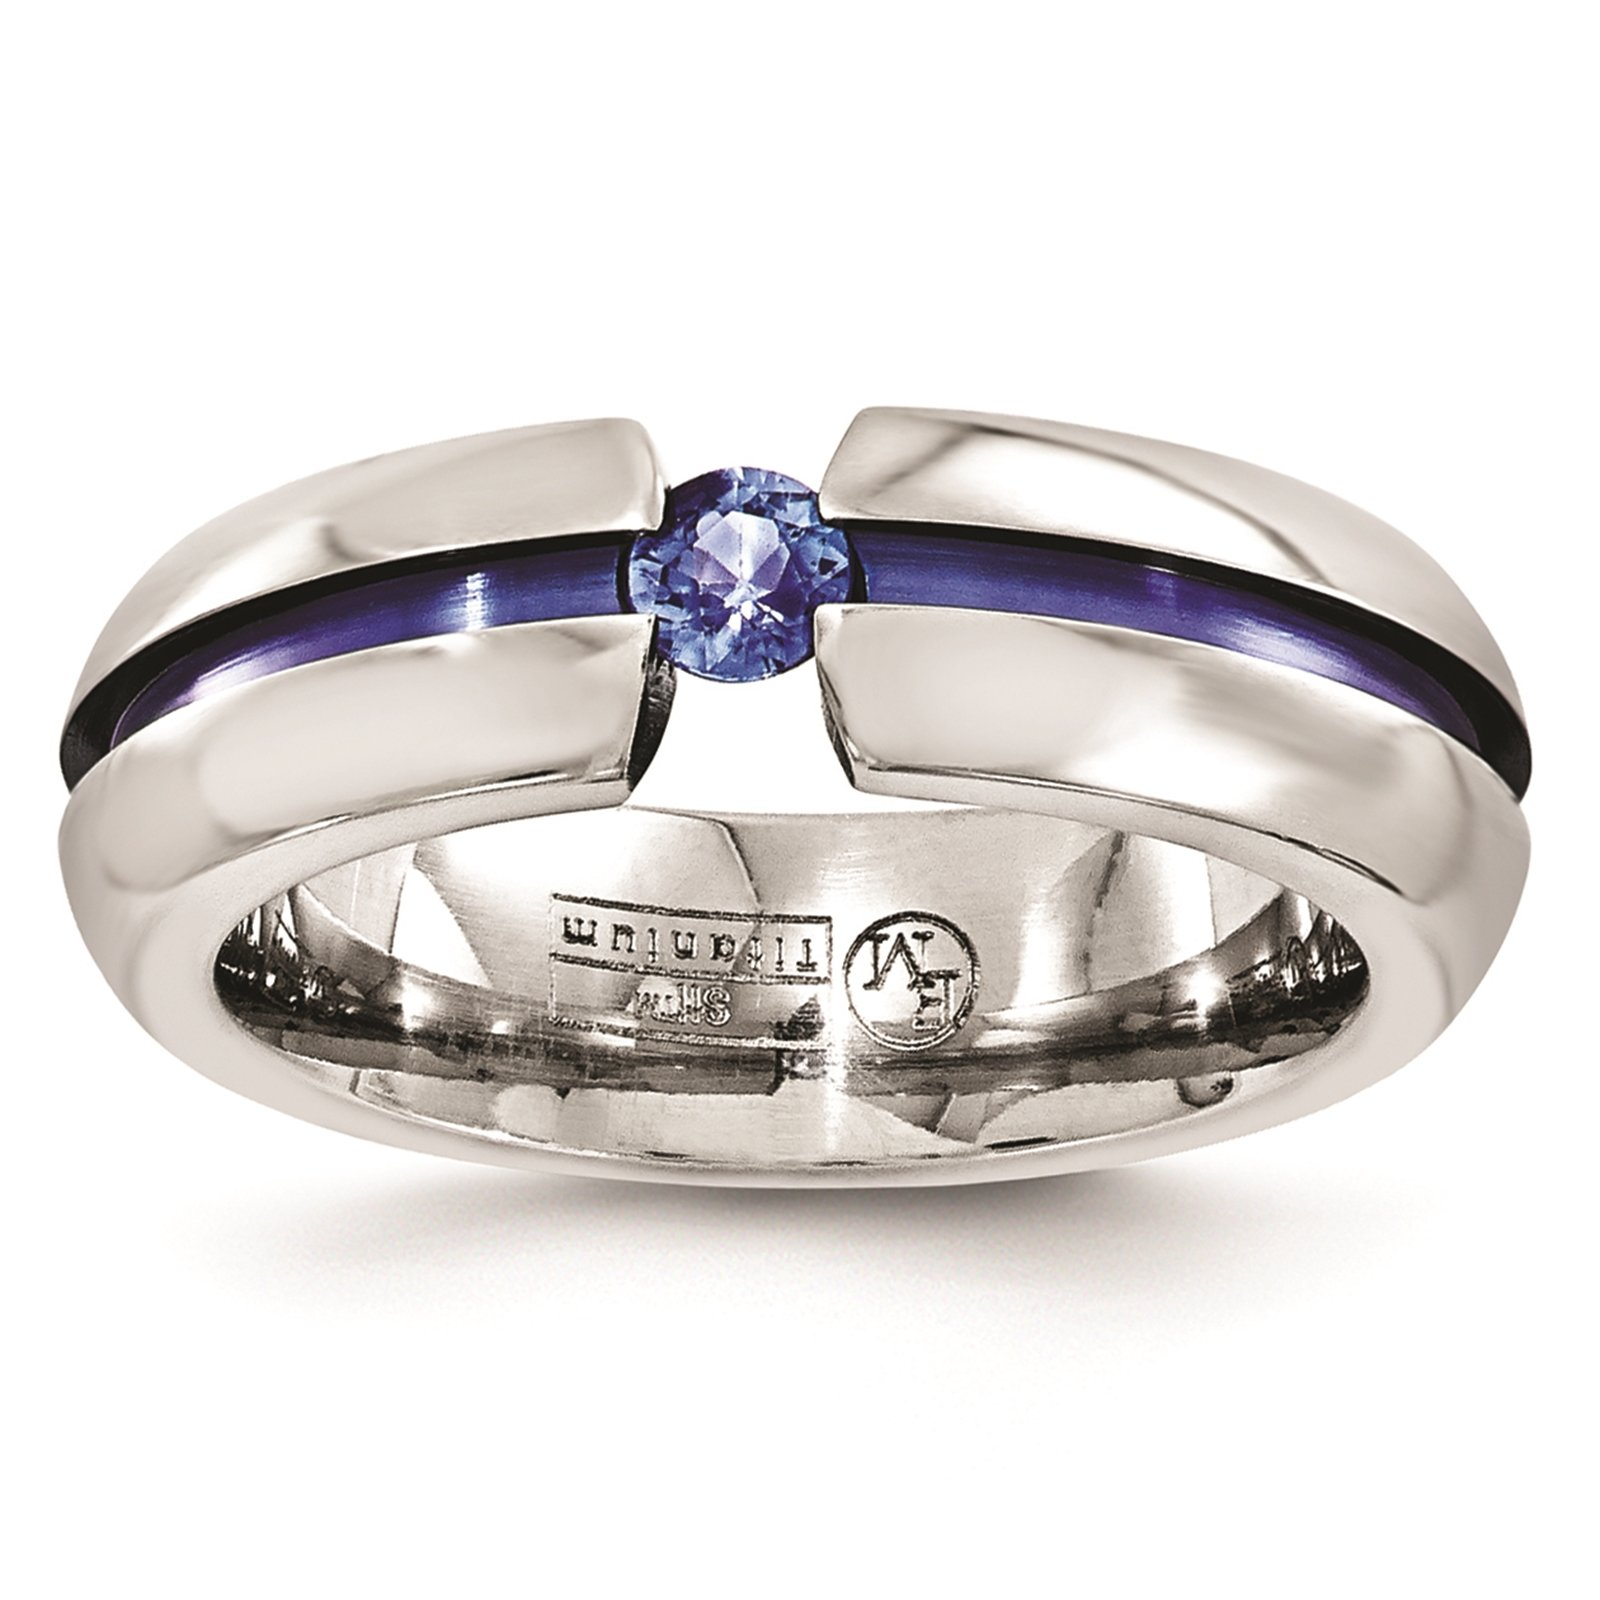 Titanium Blue Anodized w/Blue Sapphire Grooved 6mm Wedding Ring Band Size 6.5 by Edward Mirell